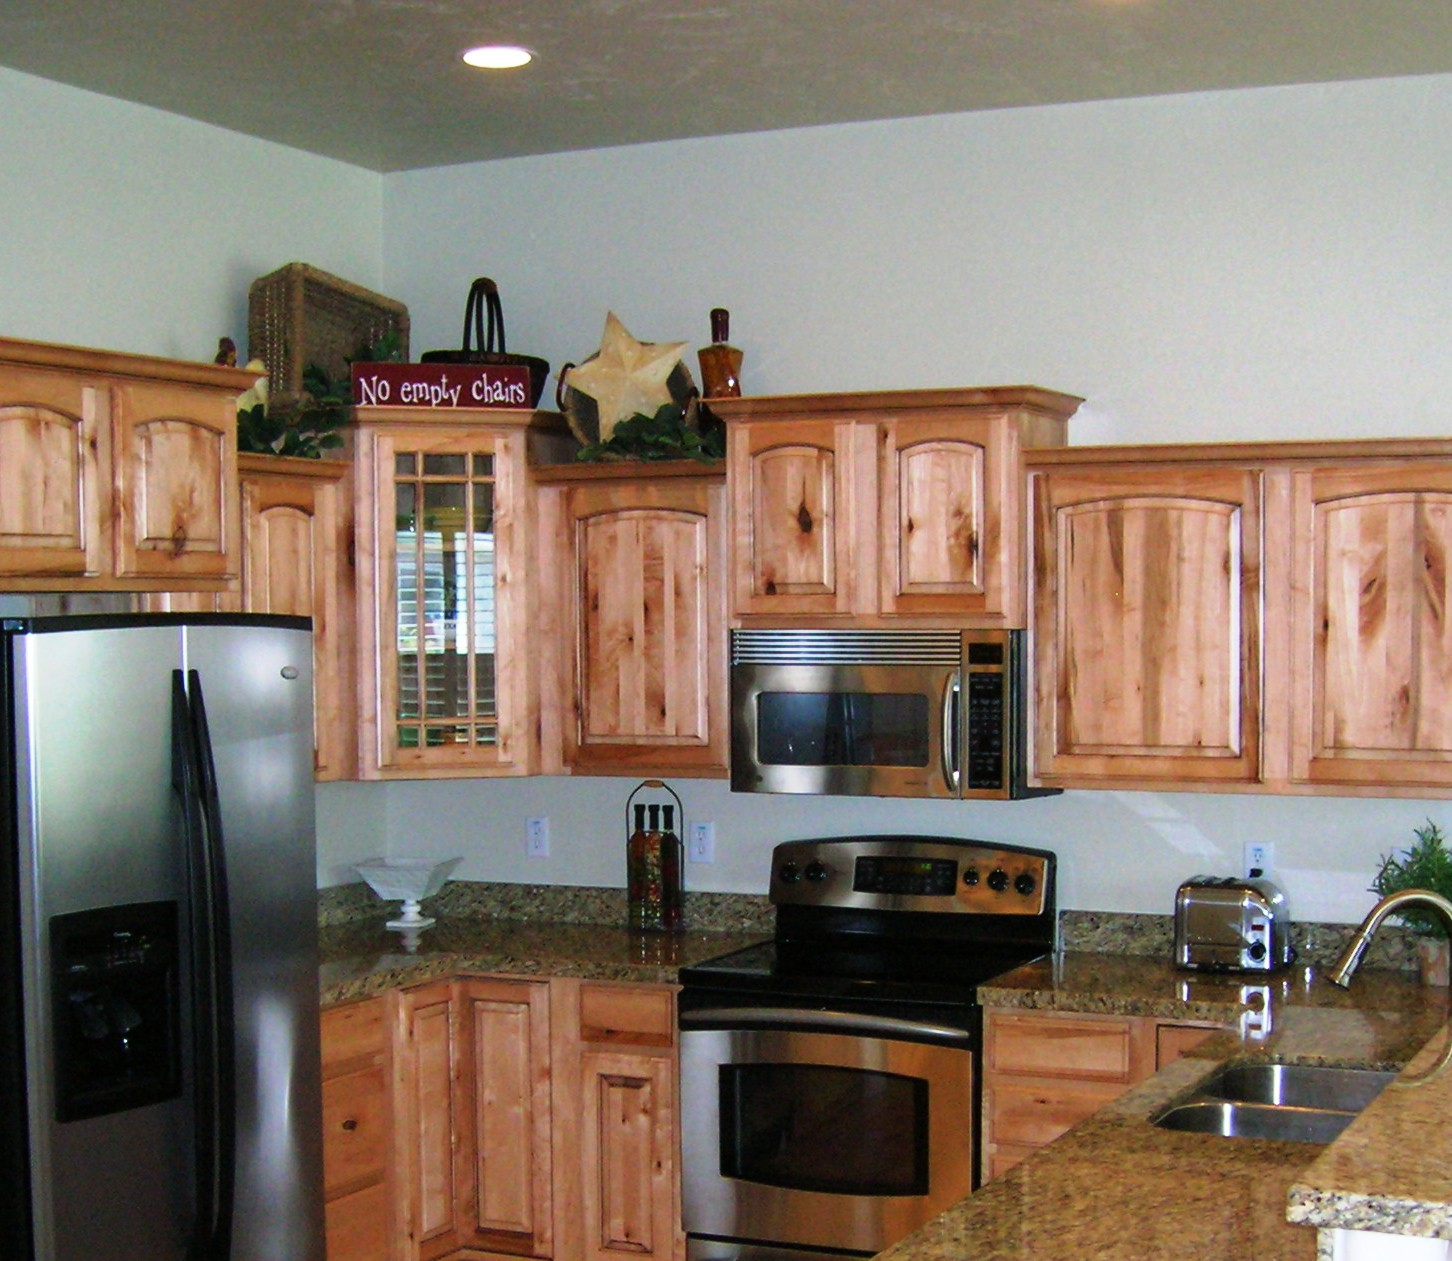 Replacing Kitchen Cabinets On A Budget: 5 Ways To Update Your Cabinets On A Budget